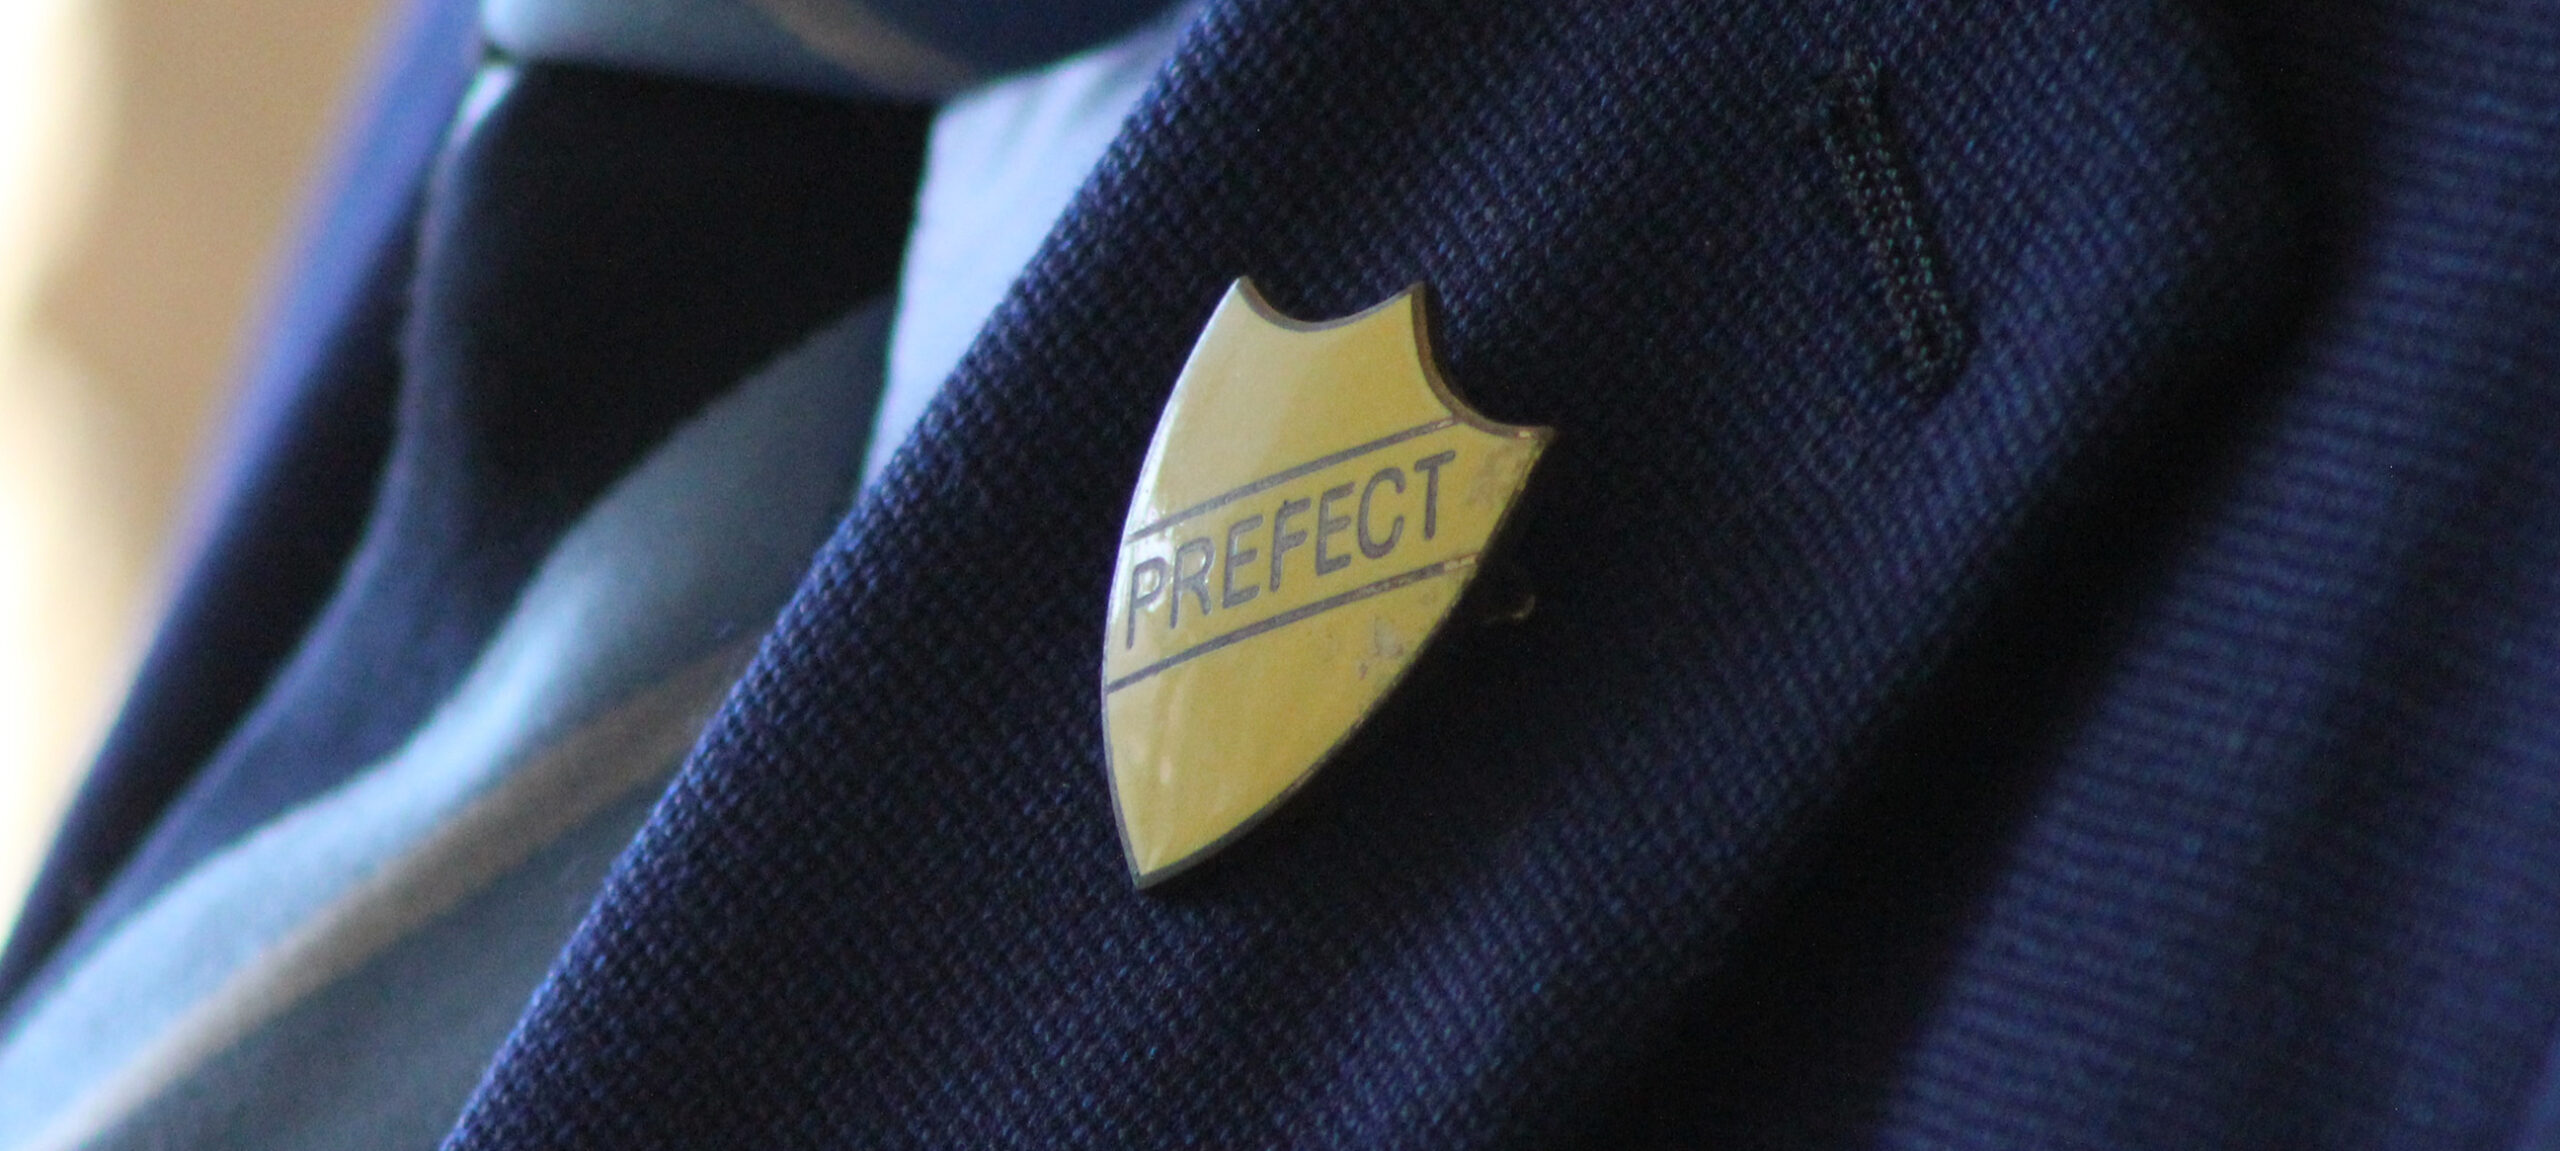 Prefect Applications 2020